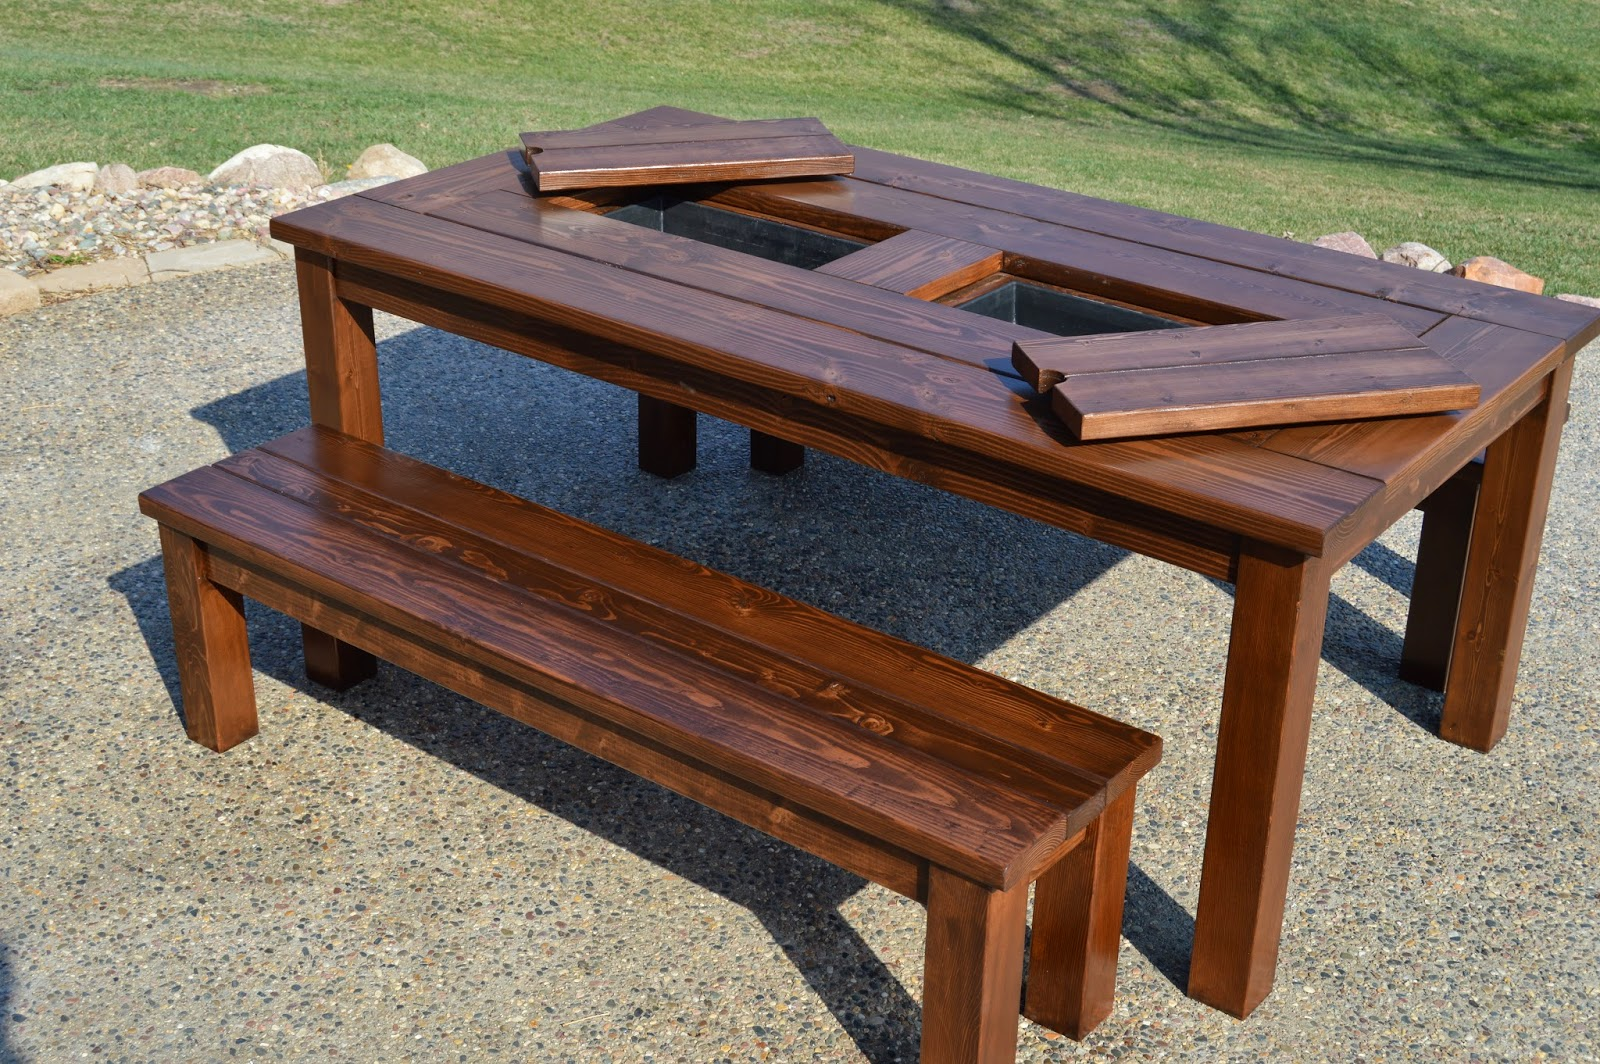 Backyard Table Plans : KRUSES WORKSHOP Patio Party Table with Built In BeerWine Ice